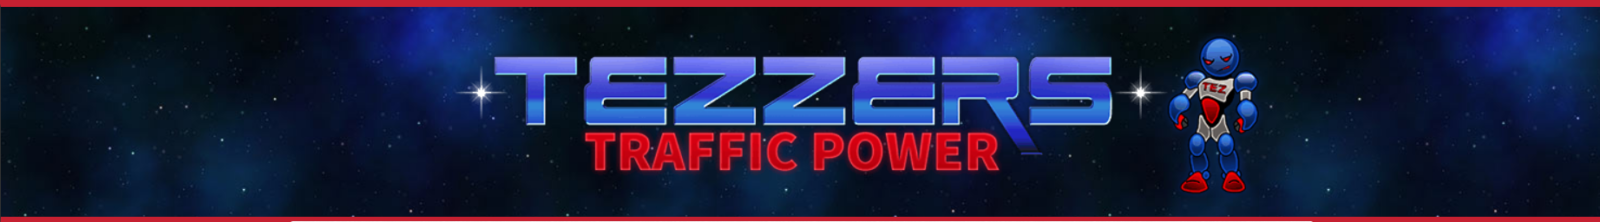 Tezzers: Drive Free Traffic to the Website